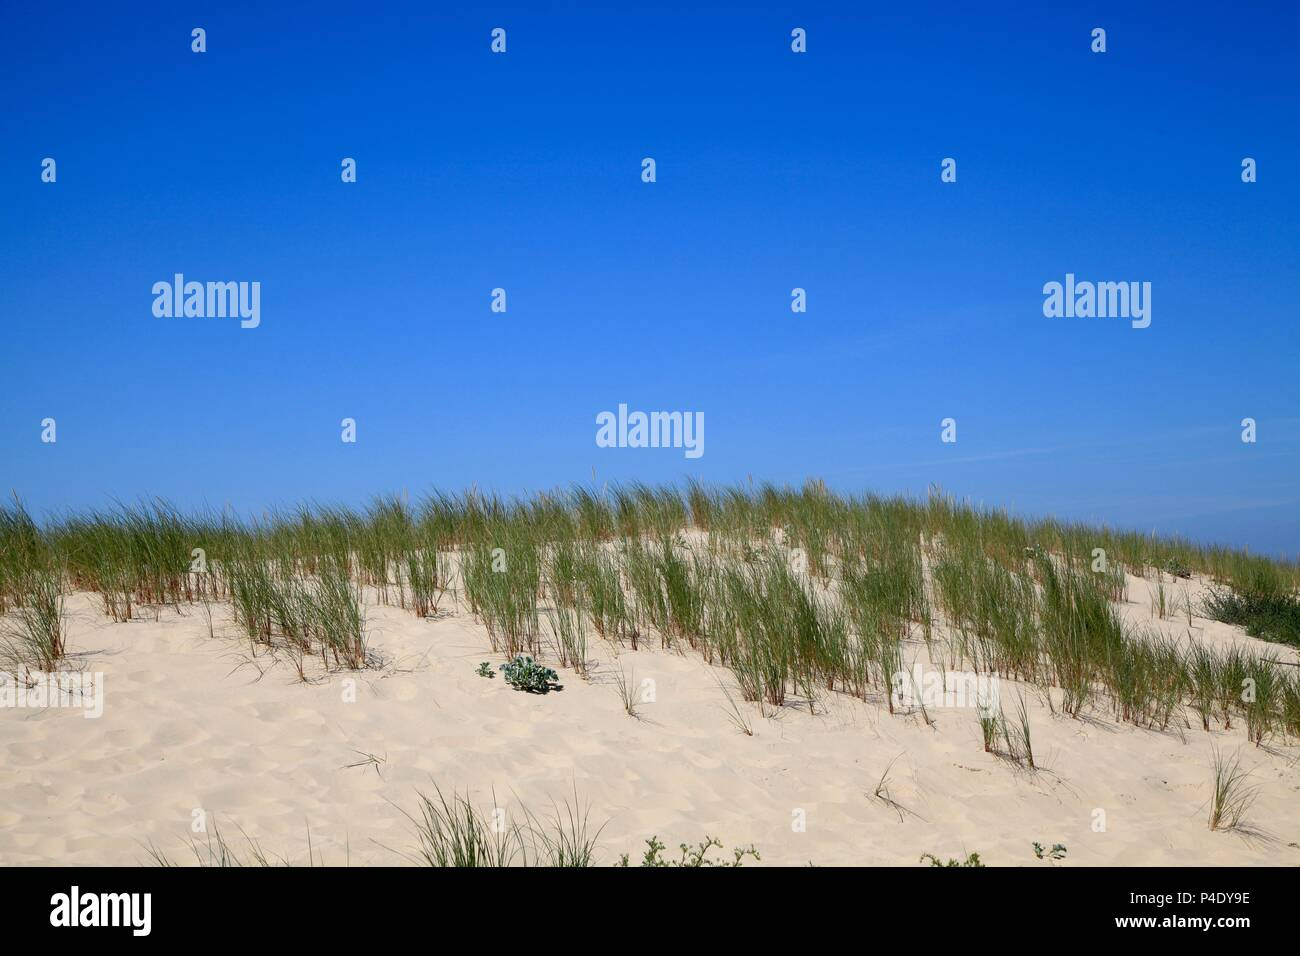 Plage de l'Horizon, Cap Ferret, Aquitaine, France Photo Stock